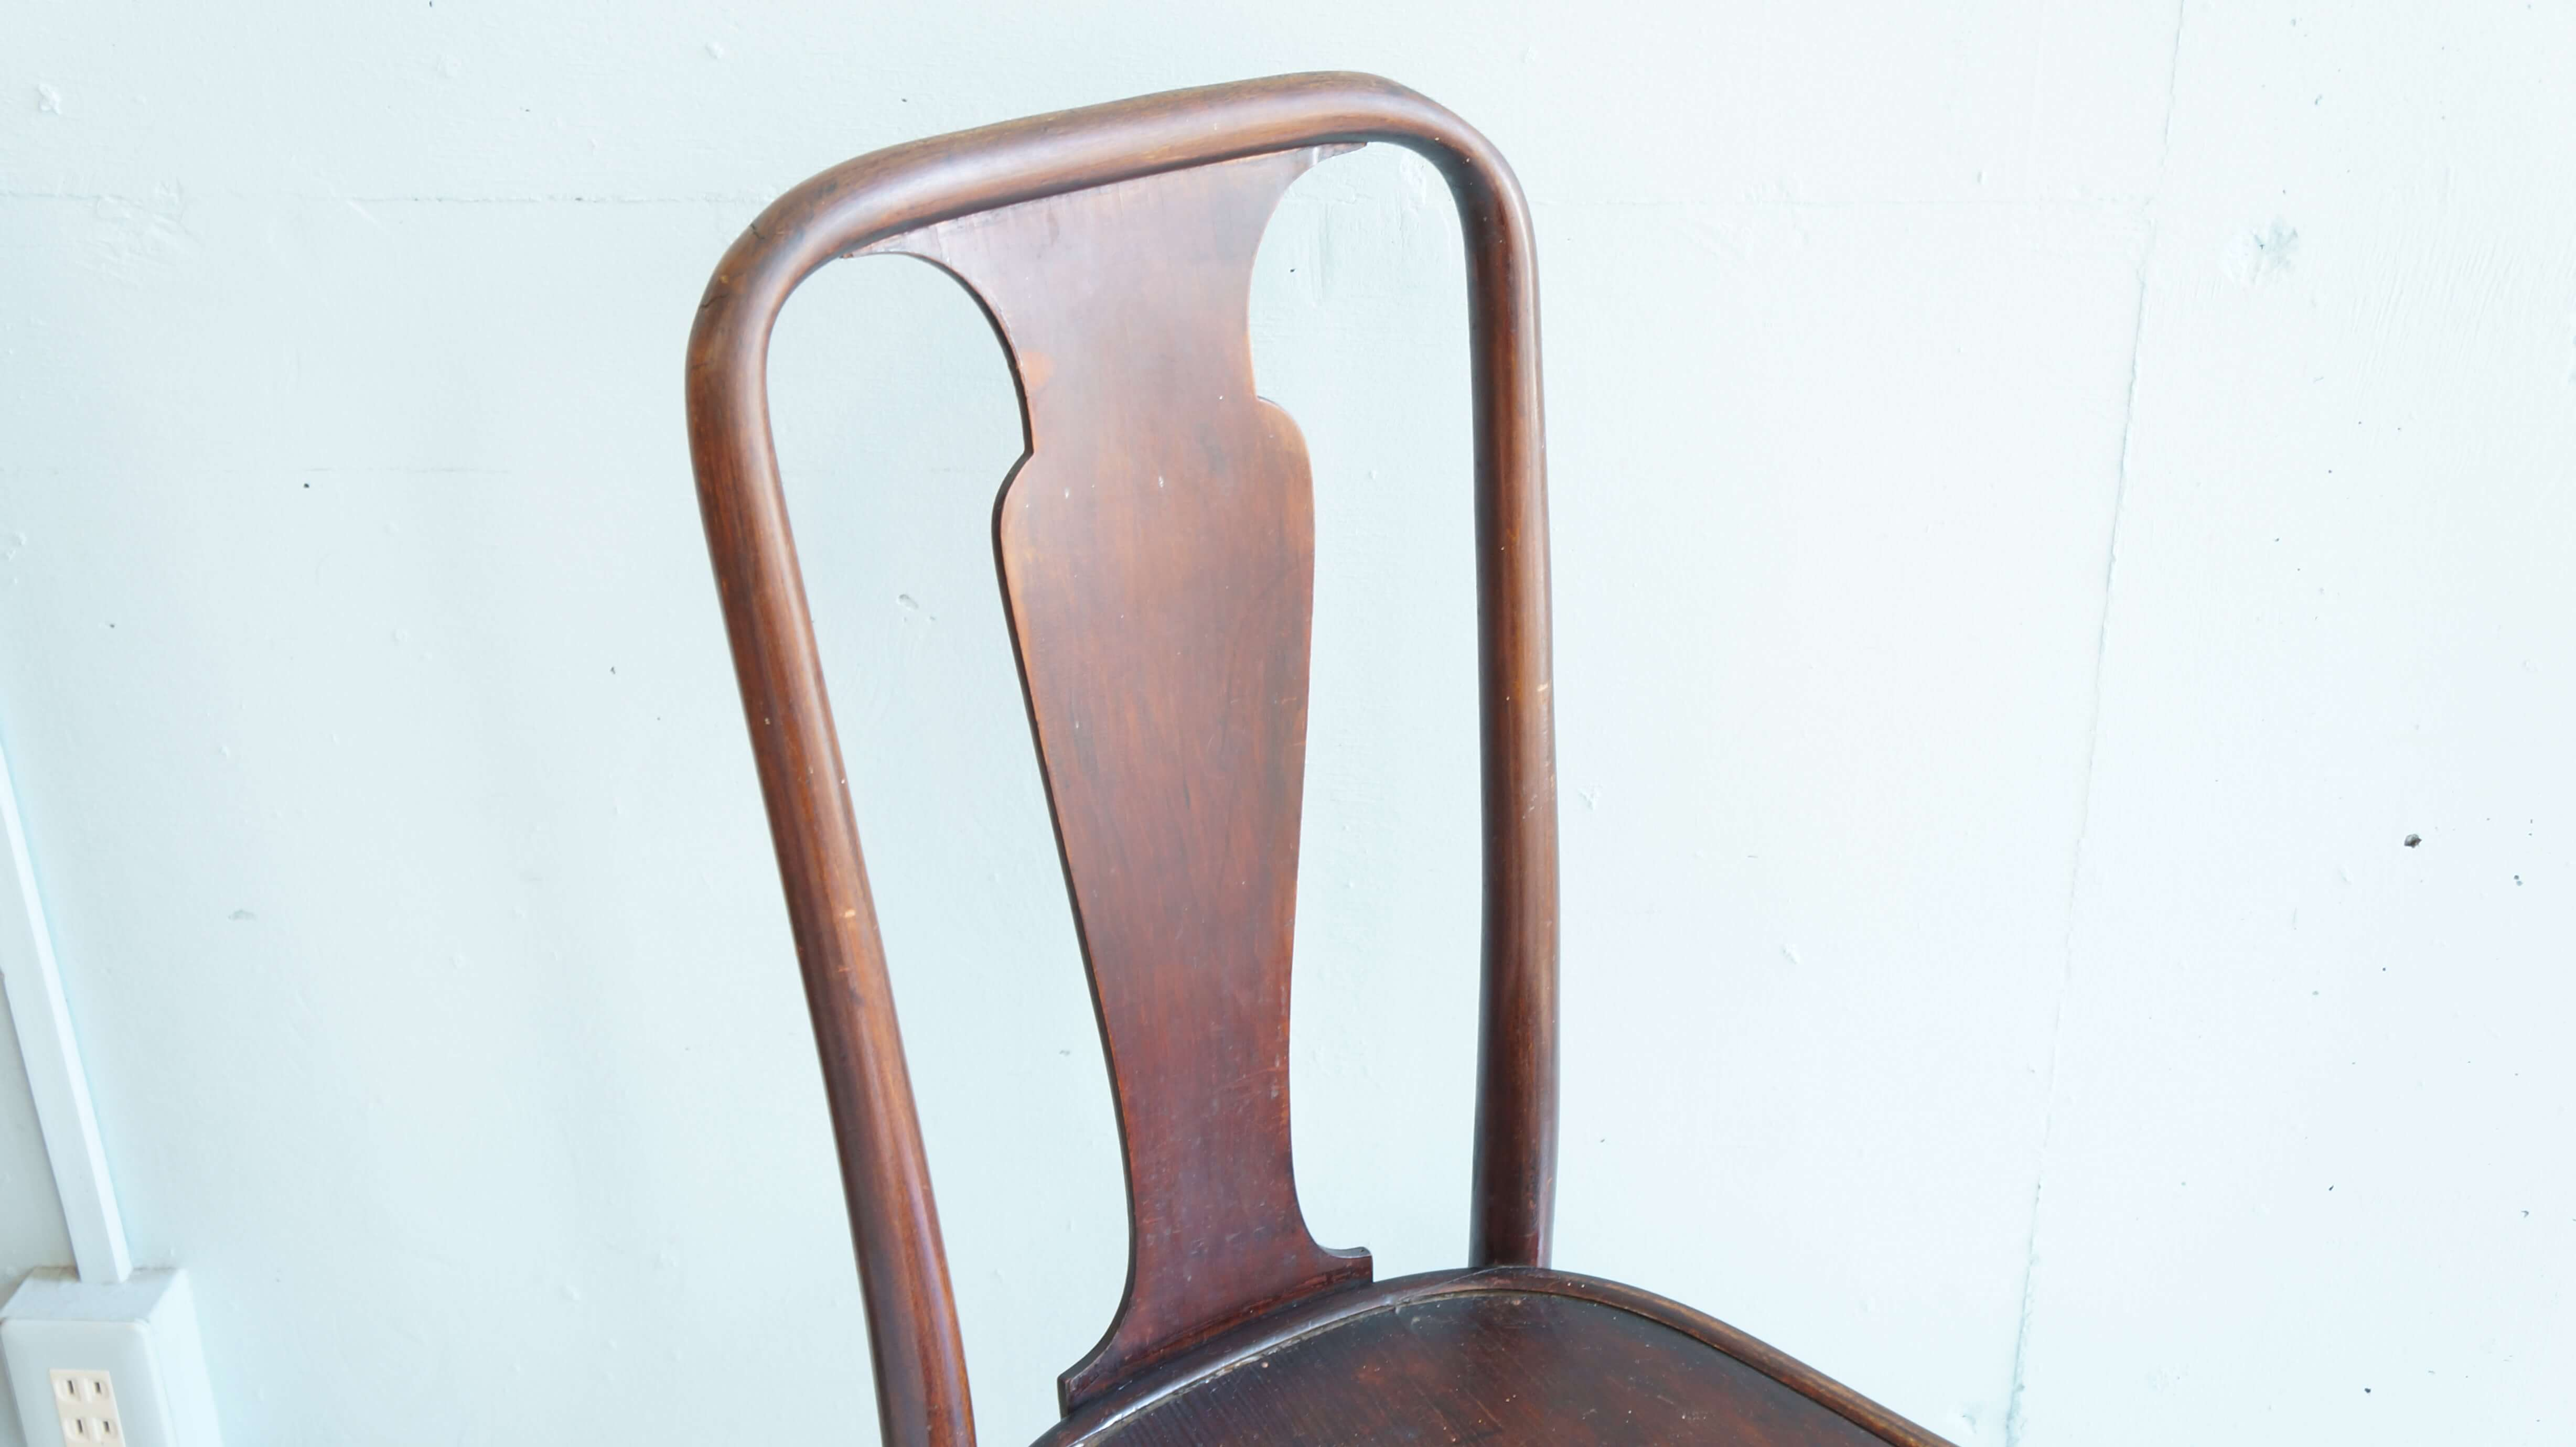 THONET BENT WOOD QUEEN ANNE CHAIR NO.442 / トーネット社 クイーンアンチェア 曲木